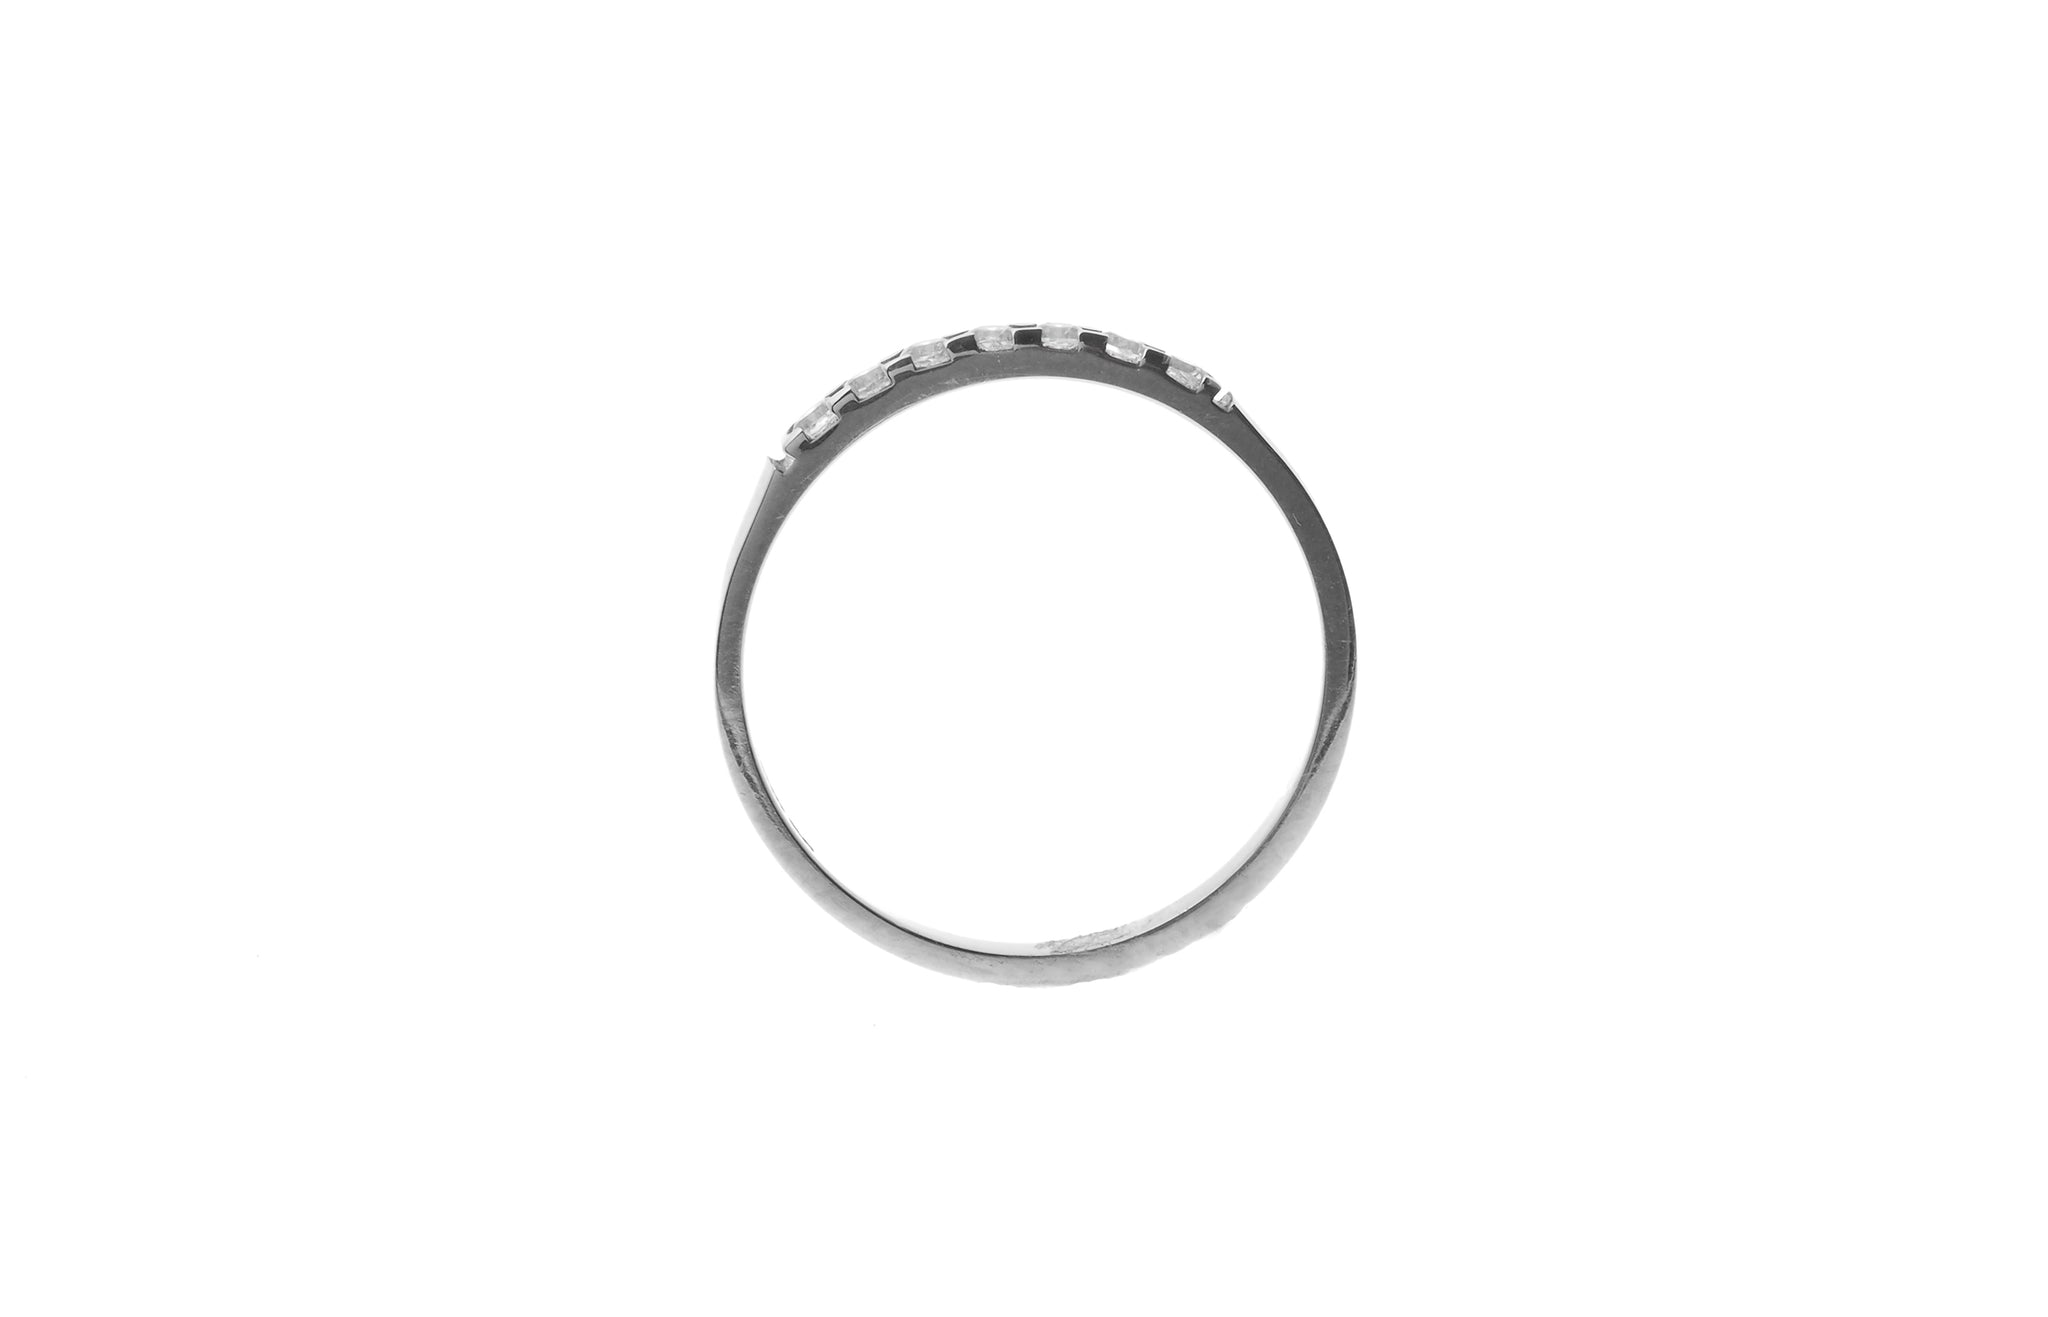 18ct White Gold Cubic Zirconia Quarter Eternity Ring (1.8g) LR-4333